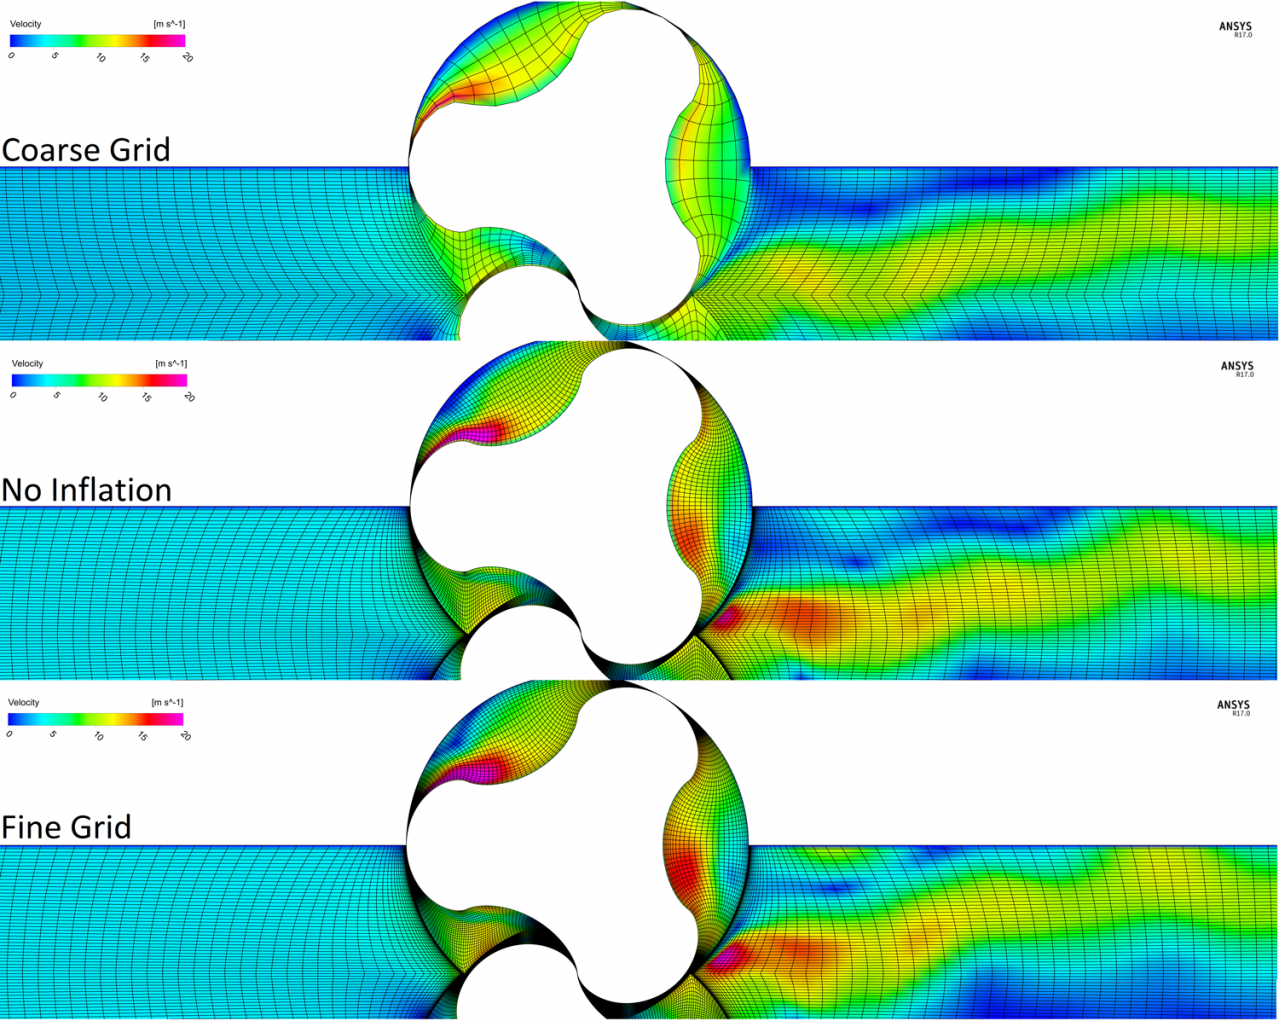 Simulation of the 2D lobe pump: Velocity distribution calculated on the coarse grid (top), fine grid without inflation layer (center) and the fine grid with inflation layer (bottom) towards the rotor walls